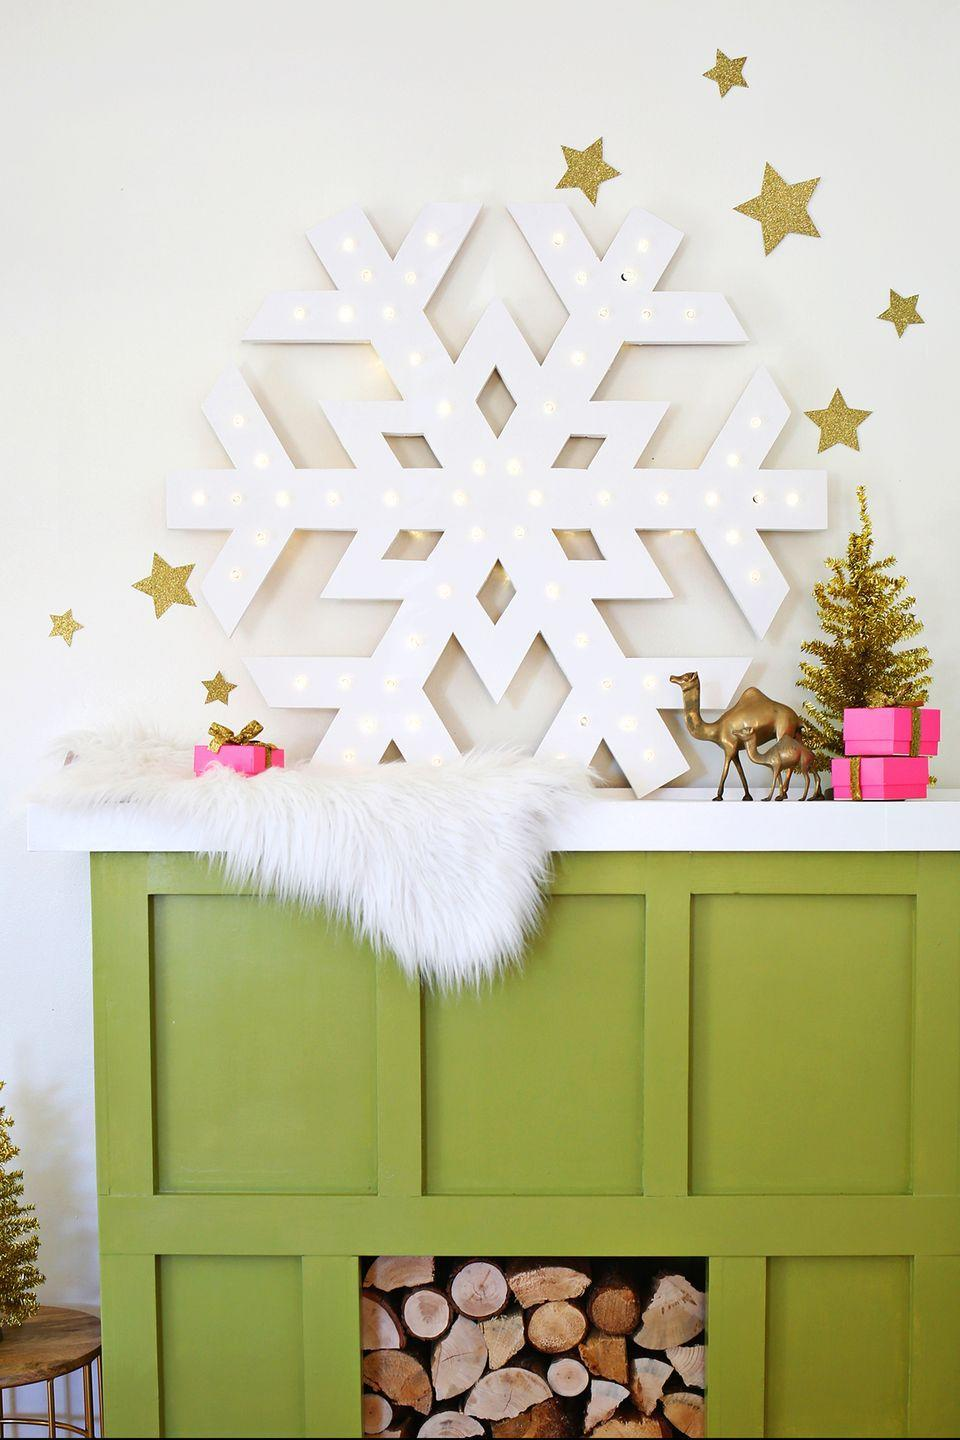 """<p>This light is a slightly more advanced DIY project, but its beauty makes it well worth the extra effort.</p><p><strong>Get the tutorial at <a href=""""https://abeautifulmess.com/2014/11/giant-snowflake-light-up-marquee.html"""" rel=""""nofollow noopener"""" target=""""_blank"""" data-ylk=""""slk:A Beautiful Mess"""" class=""""link rapid-noclick-resp"""">A Beautiful Mess</a>.</strong></p><p><strong><a class=""""link rapid-noclick-resp"""" href=""""https://www.amazon.com/Koopower-Battery-Operated-String-Lights-Outdoor-Waterproof-Dimmable/dp/B015Q7VOOM/?tag=syn-yahoo-20&ascsubtag=%5Bartid%7C10050.g.23489557%5Bsrc%7Cyahoo-us"""" rel=""""nofollow noopener"""" target=""""_blank"""" data-ylk=""""slk:SHOP STRING LIGHTS"""">SHOP STRING LIGHTS</a><br></strong></p>"""